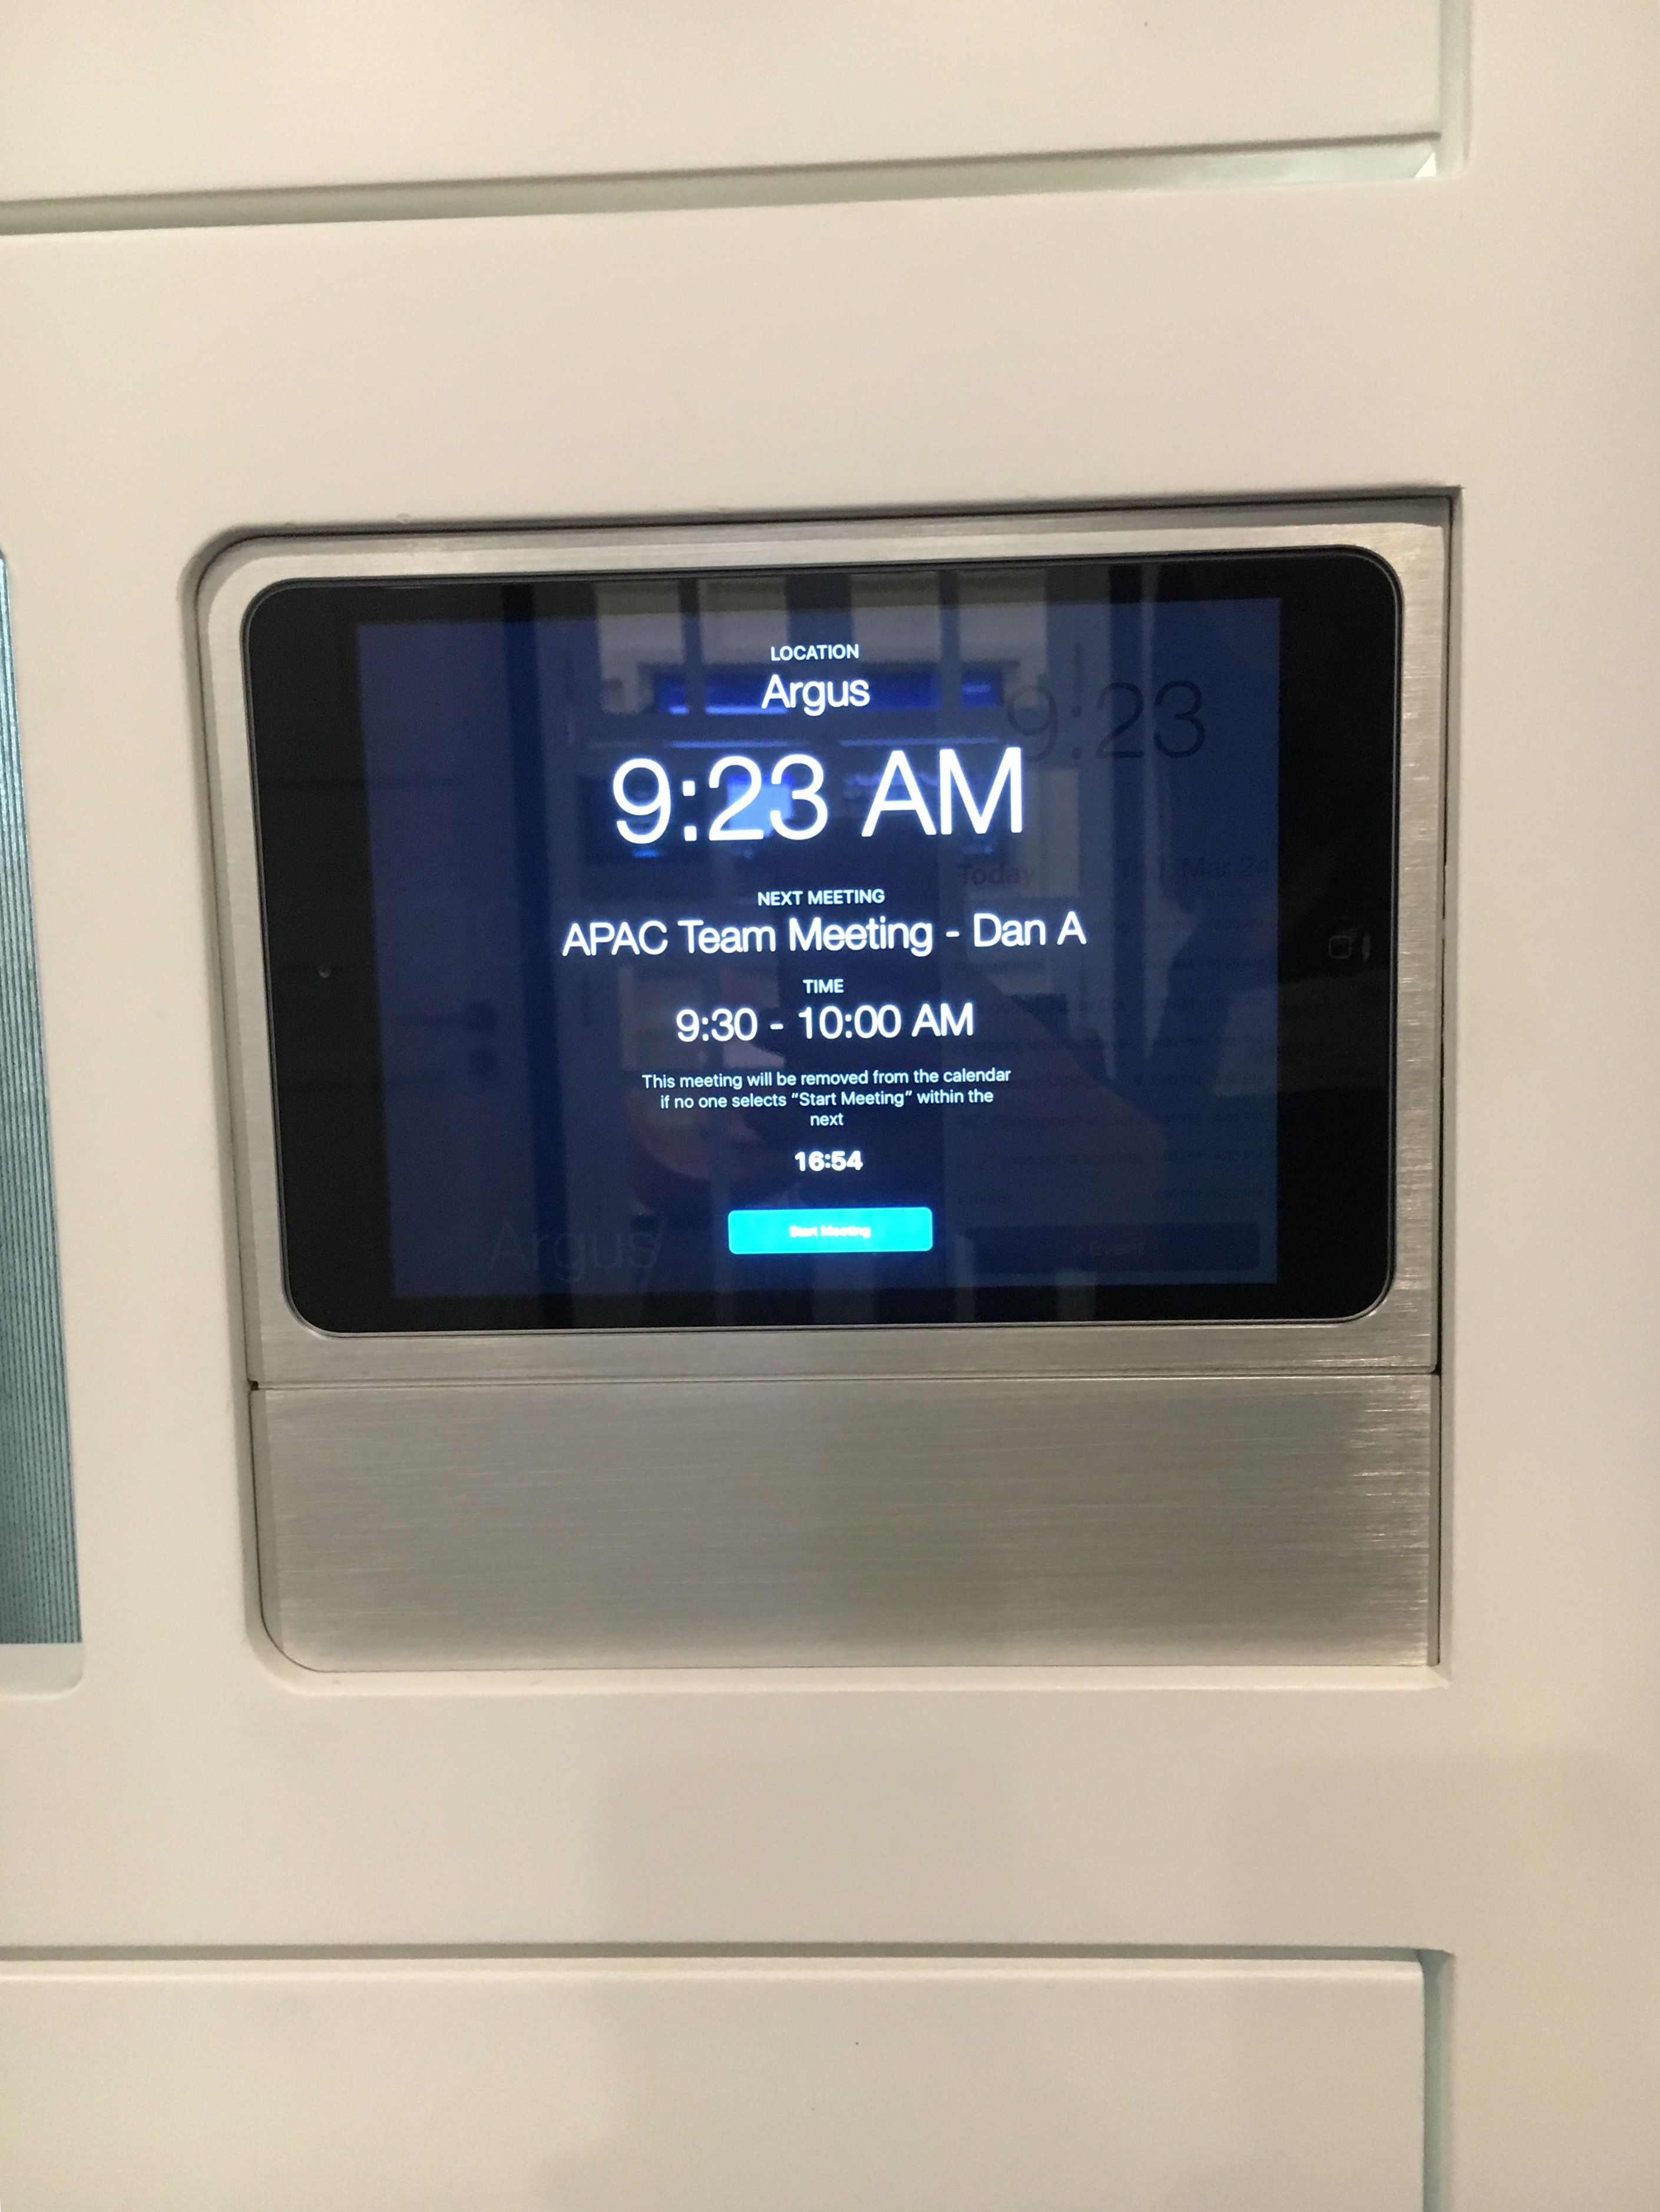 Meeting room booking system   Office Space   Pinterest   Meeting ...